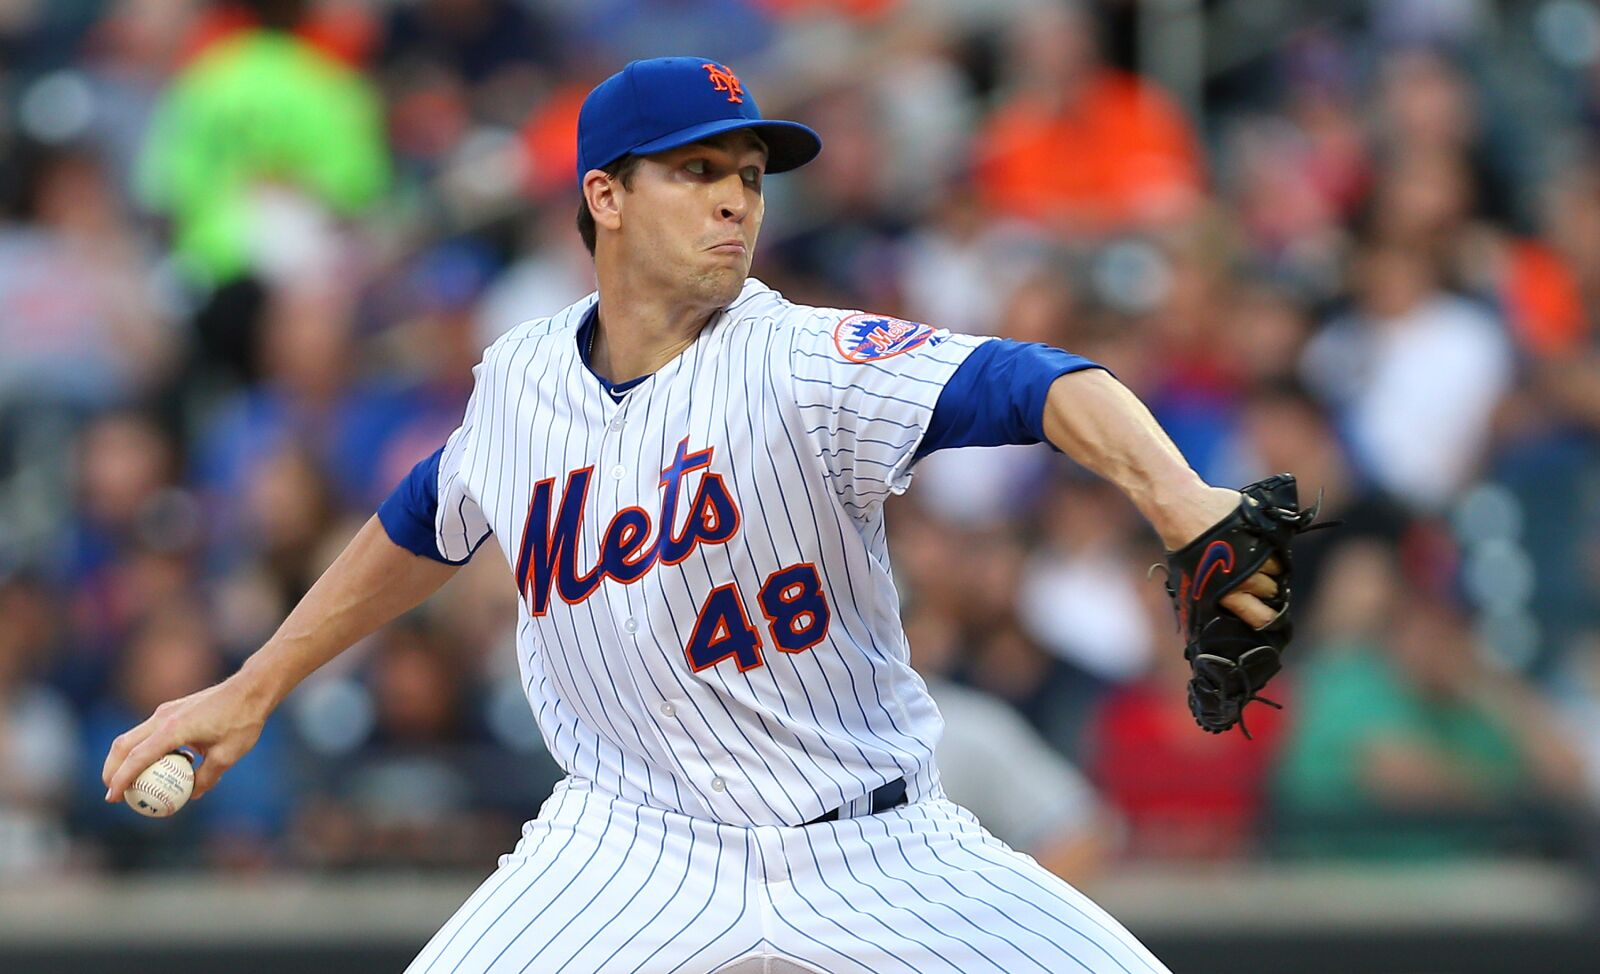 NEW YORK, NY - JUNE 08: Jacob deGrom #48 of the New York Mets in action against the New York Yankees at Citi Field on June 8, 2018 in the Flushing neighborhood of the Queens borough of New York City. The Yankees defeated the Mets 4-1. (Photo by Rich Schultz/Getty Images)